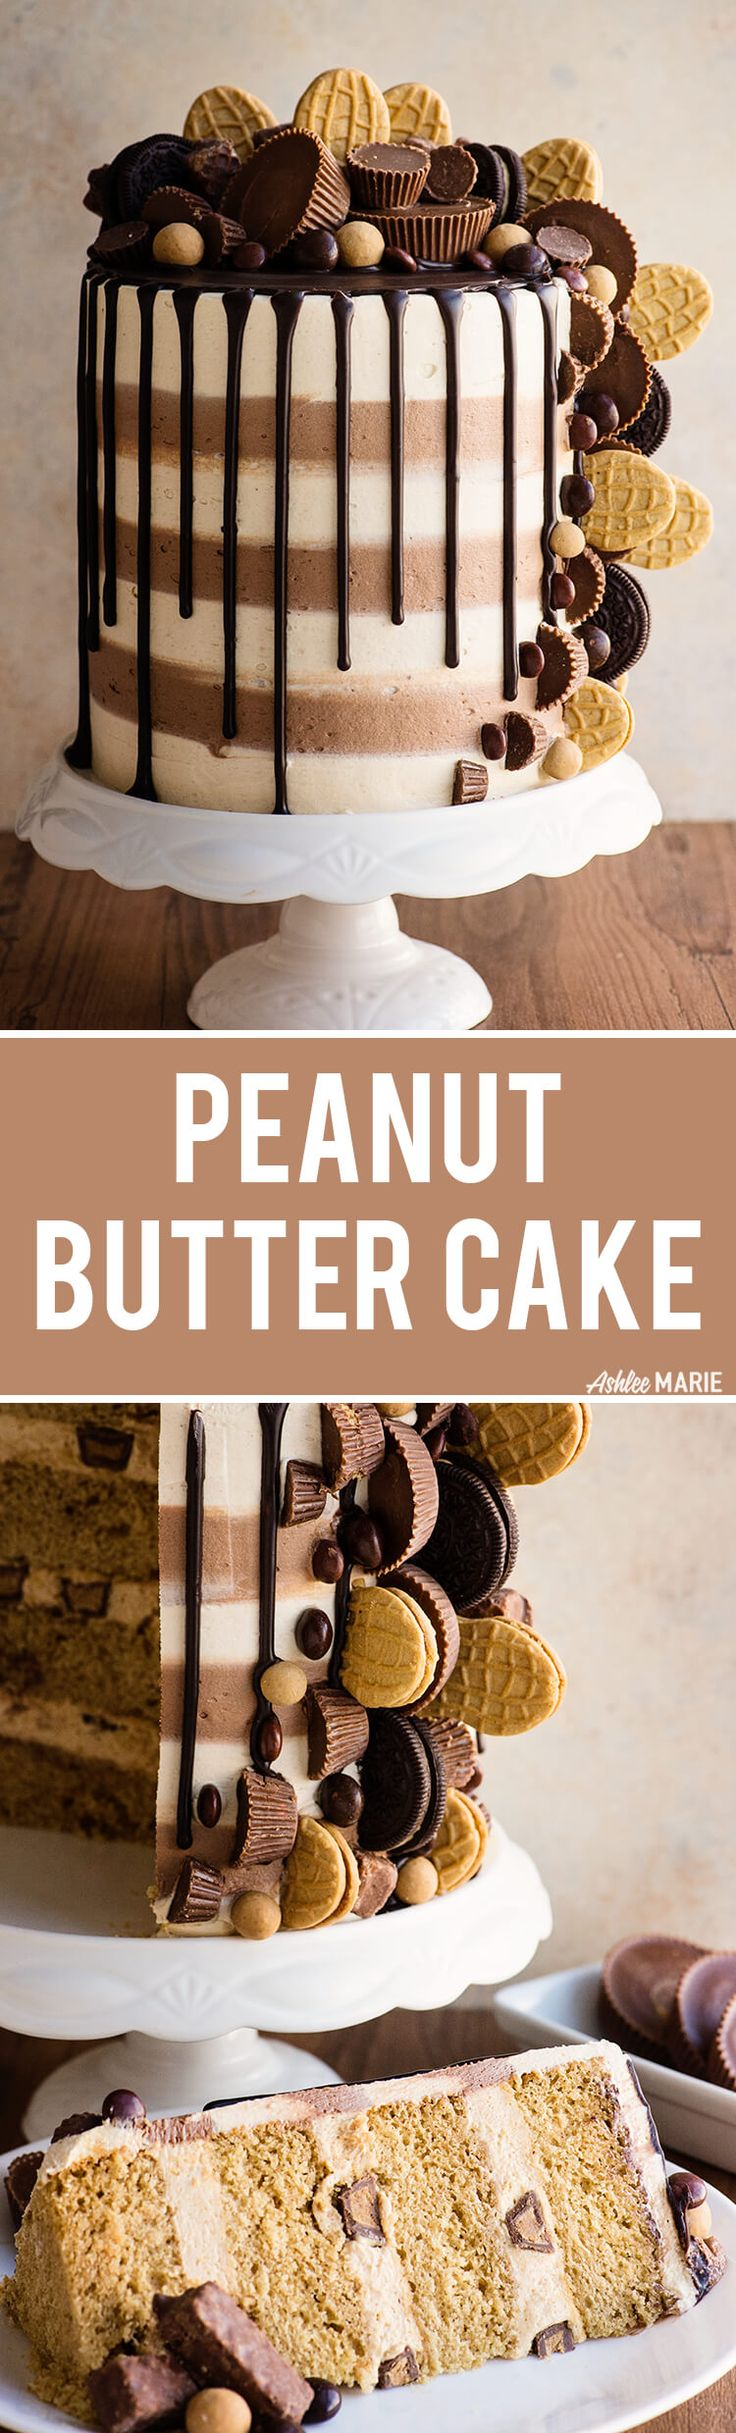 Triple Peanut butter cake recipe video via @ashleemariecake